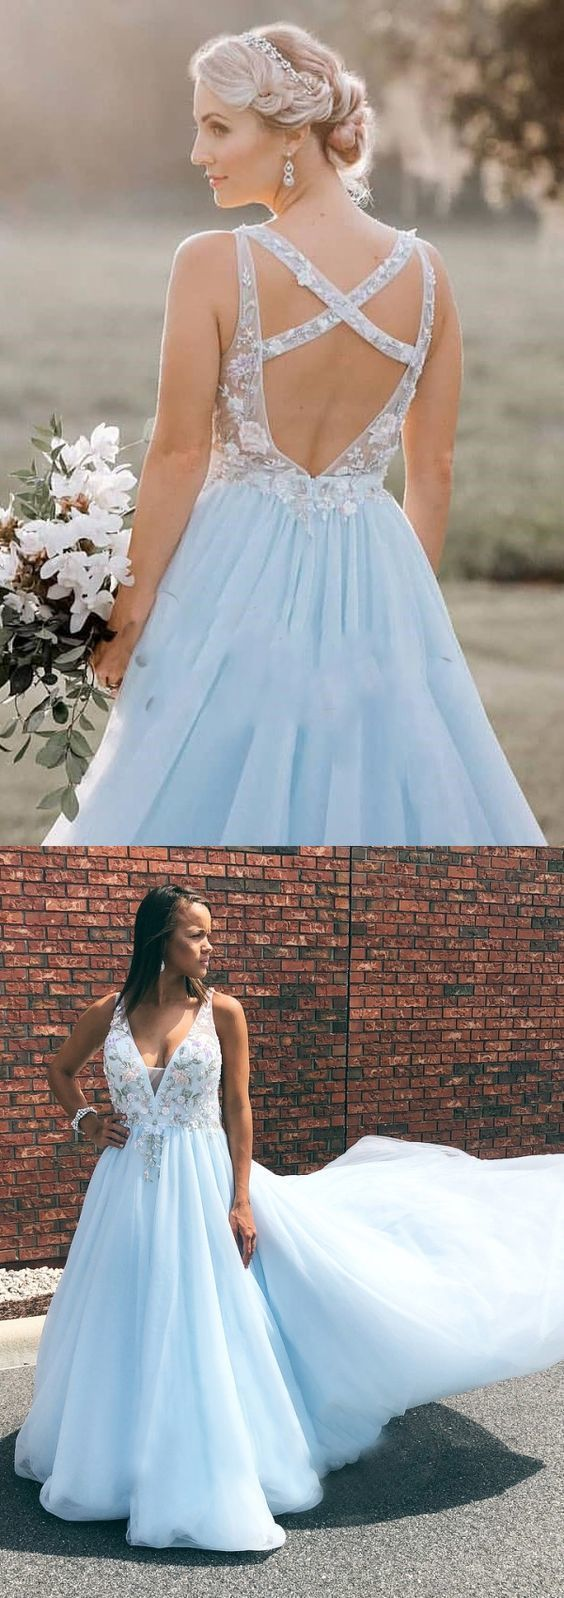 Open Back Prom Dresses with Straps A Line V-neck Long Embroidery Sky Blue Prom Dress,E0409